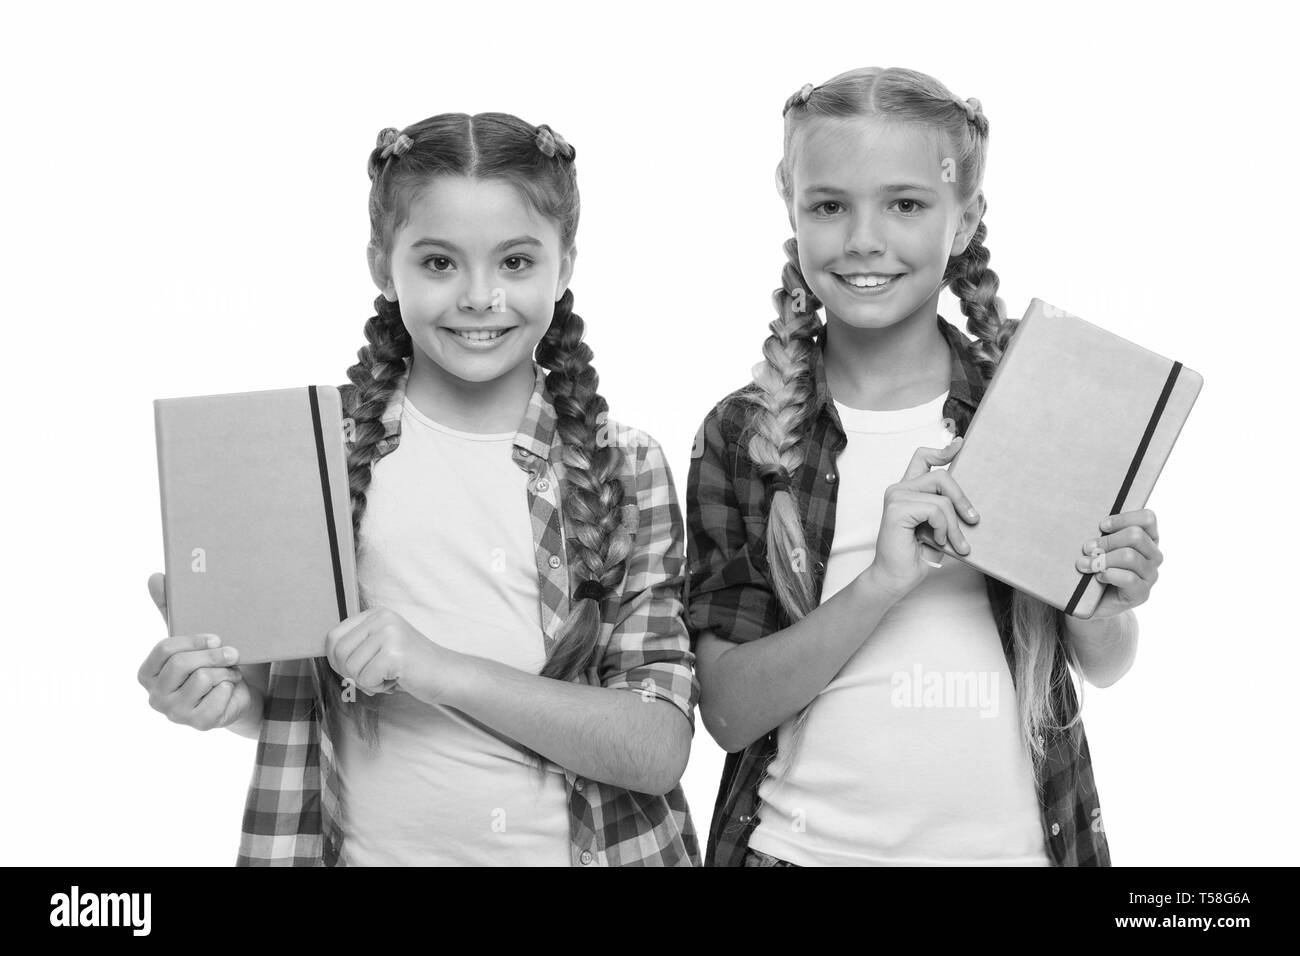 Diary for girls concept. Children cute girls hold notepads or diaries isolated on white background. Note secrets down in your cute girly diary journal - Stock Image